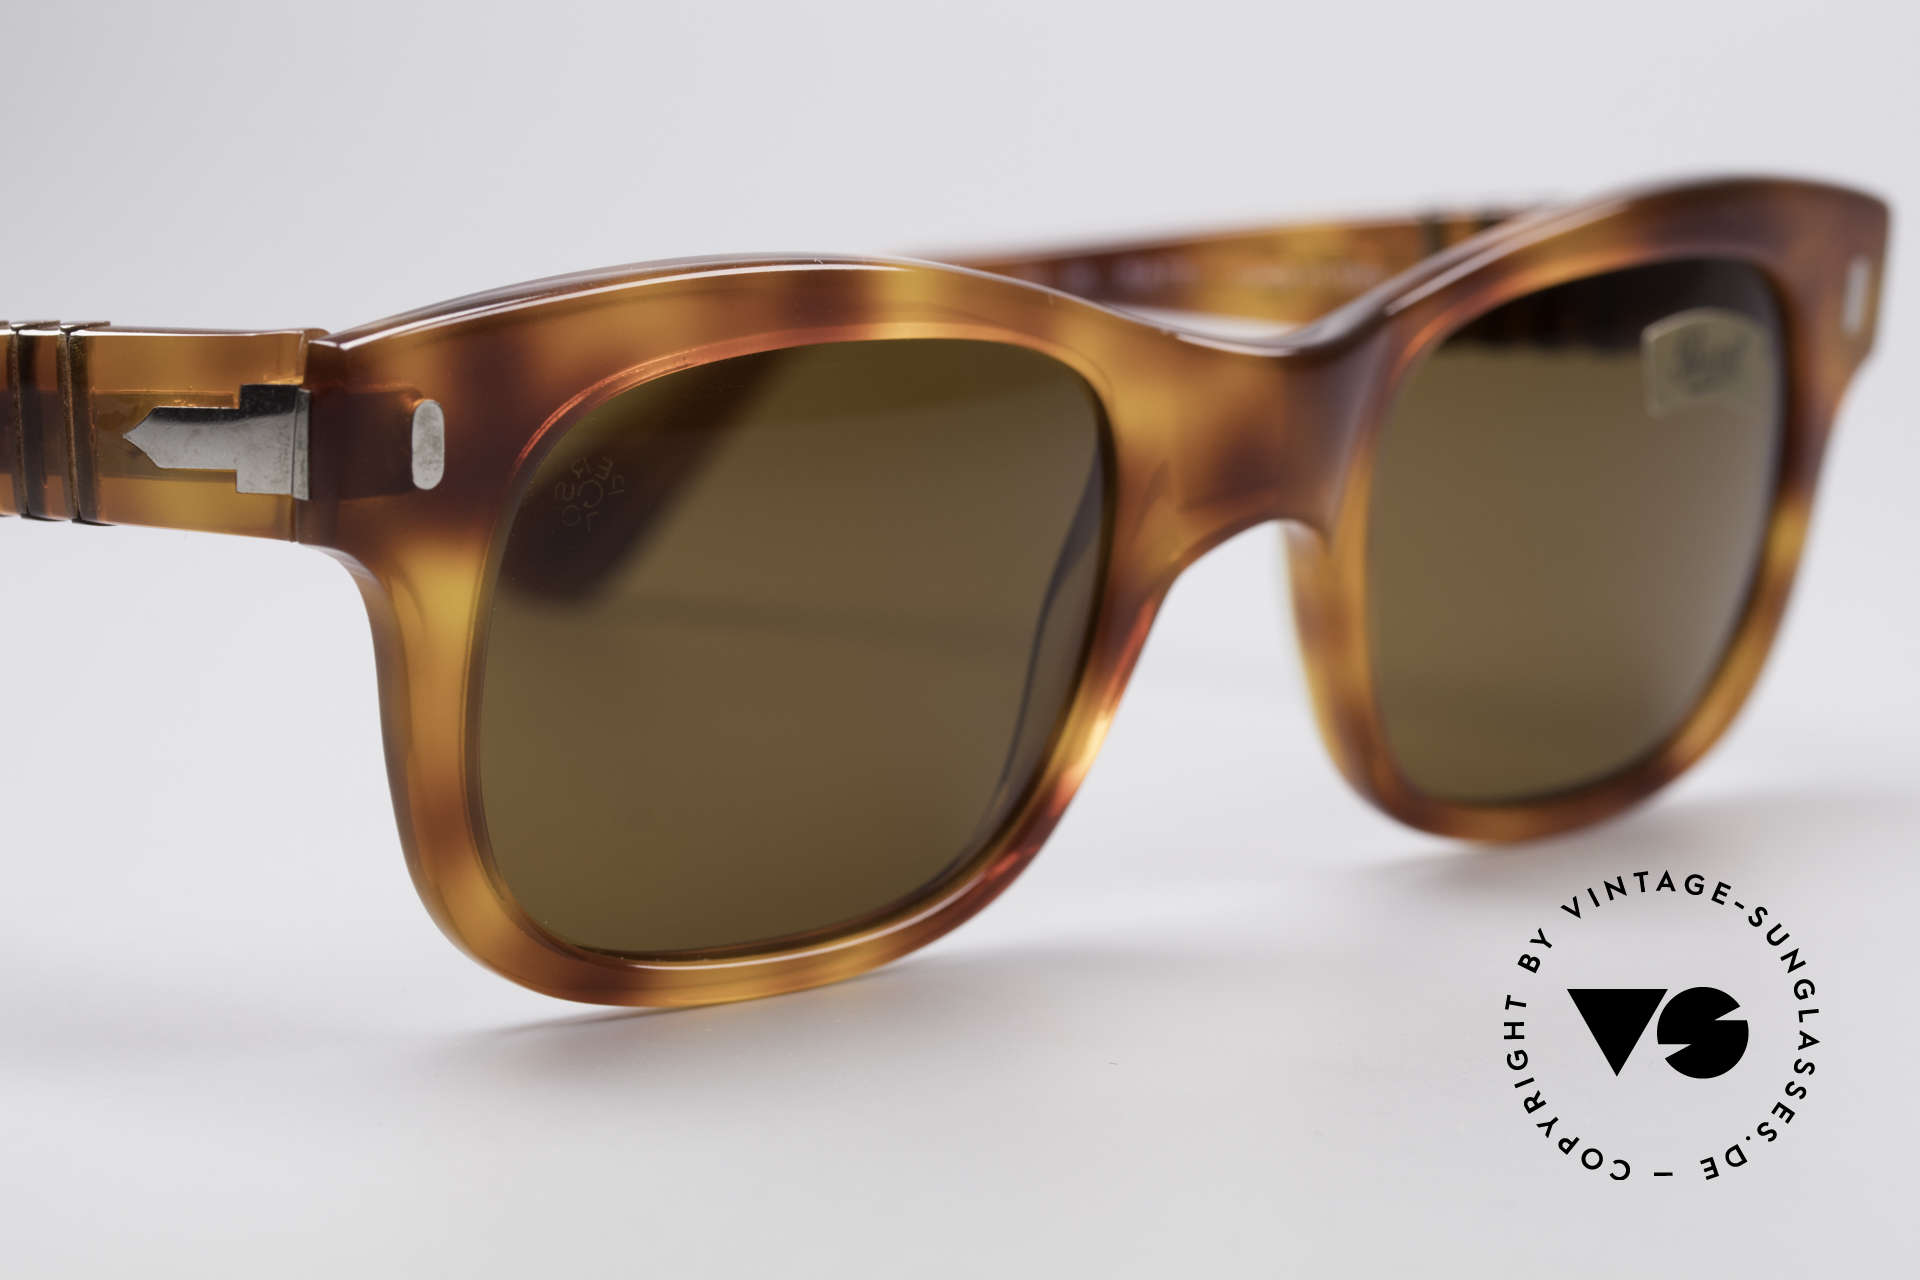 Persol 852 Ratti True Vintage 80's Shades, unworn (like all our vintage Persol RATTI sunglasses), Made for Men and Women